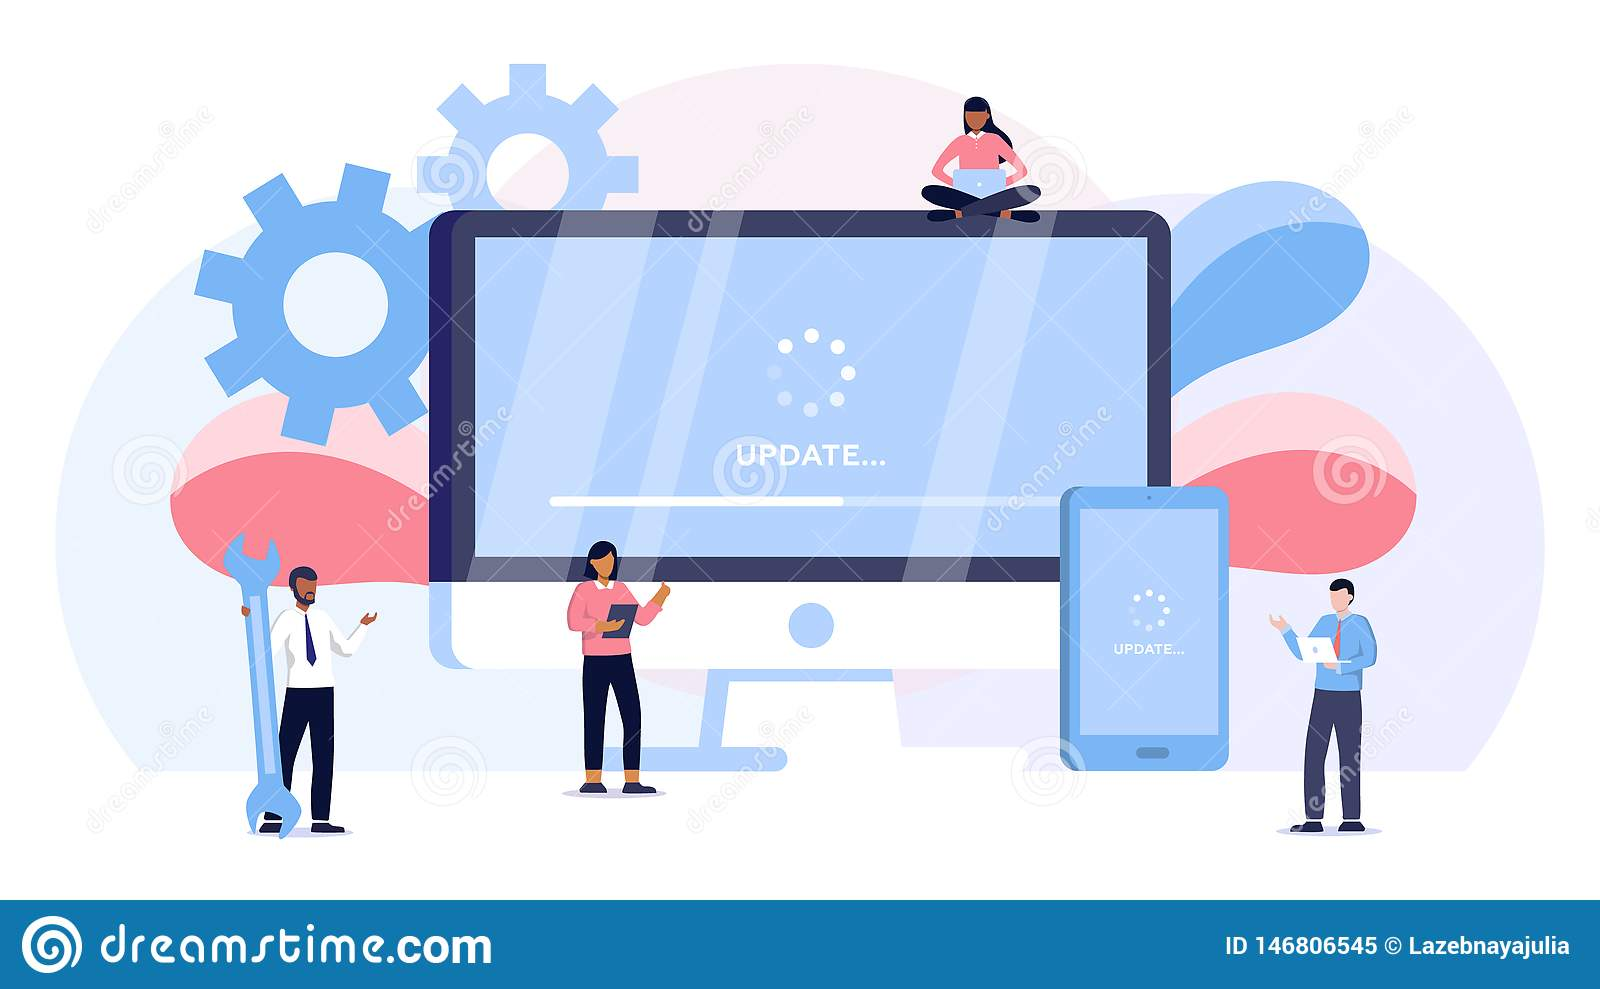 System update vector illustration concept, people update operation system can use for, landing page, template, ui, web, mobile app